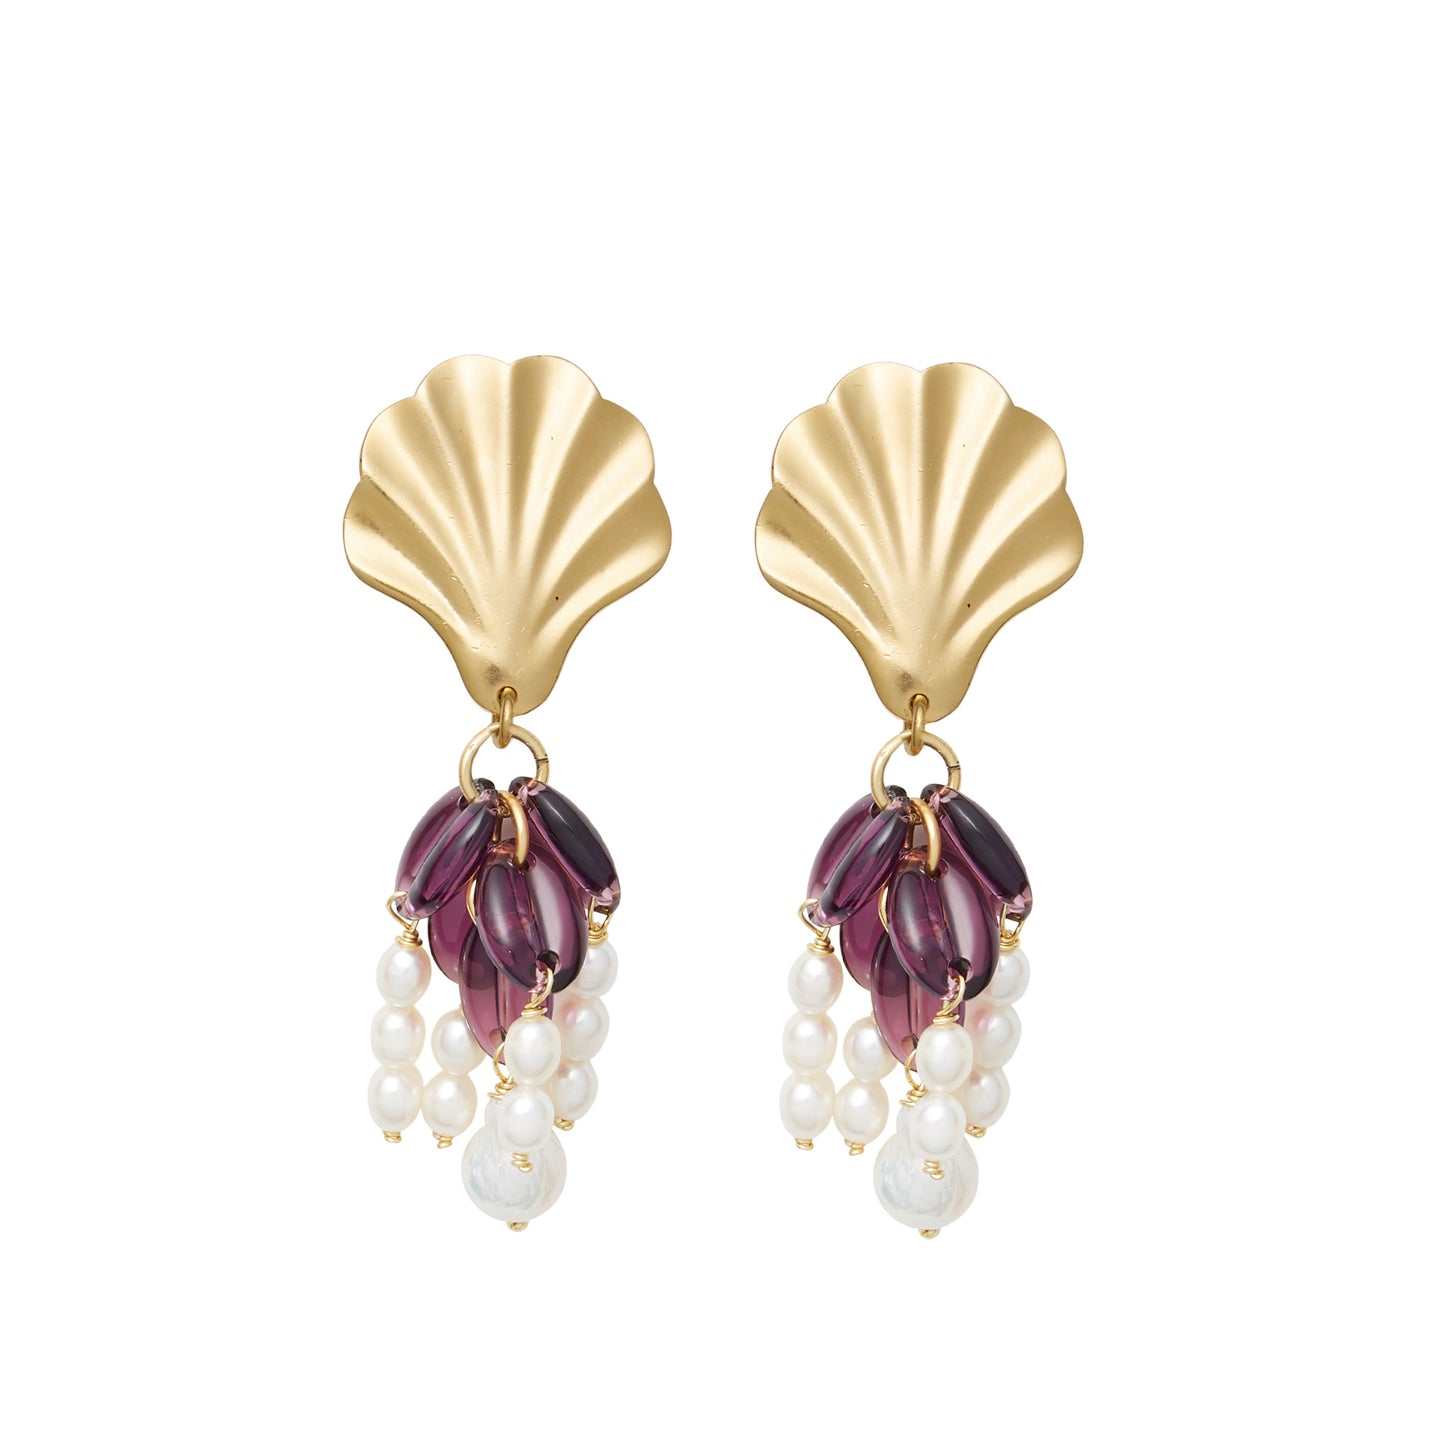 Fête Earrings